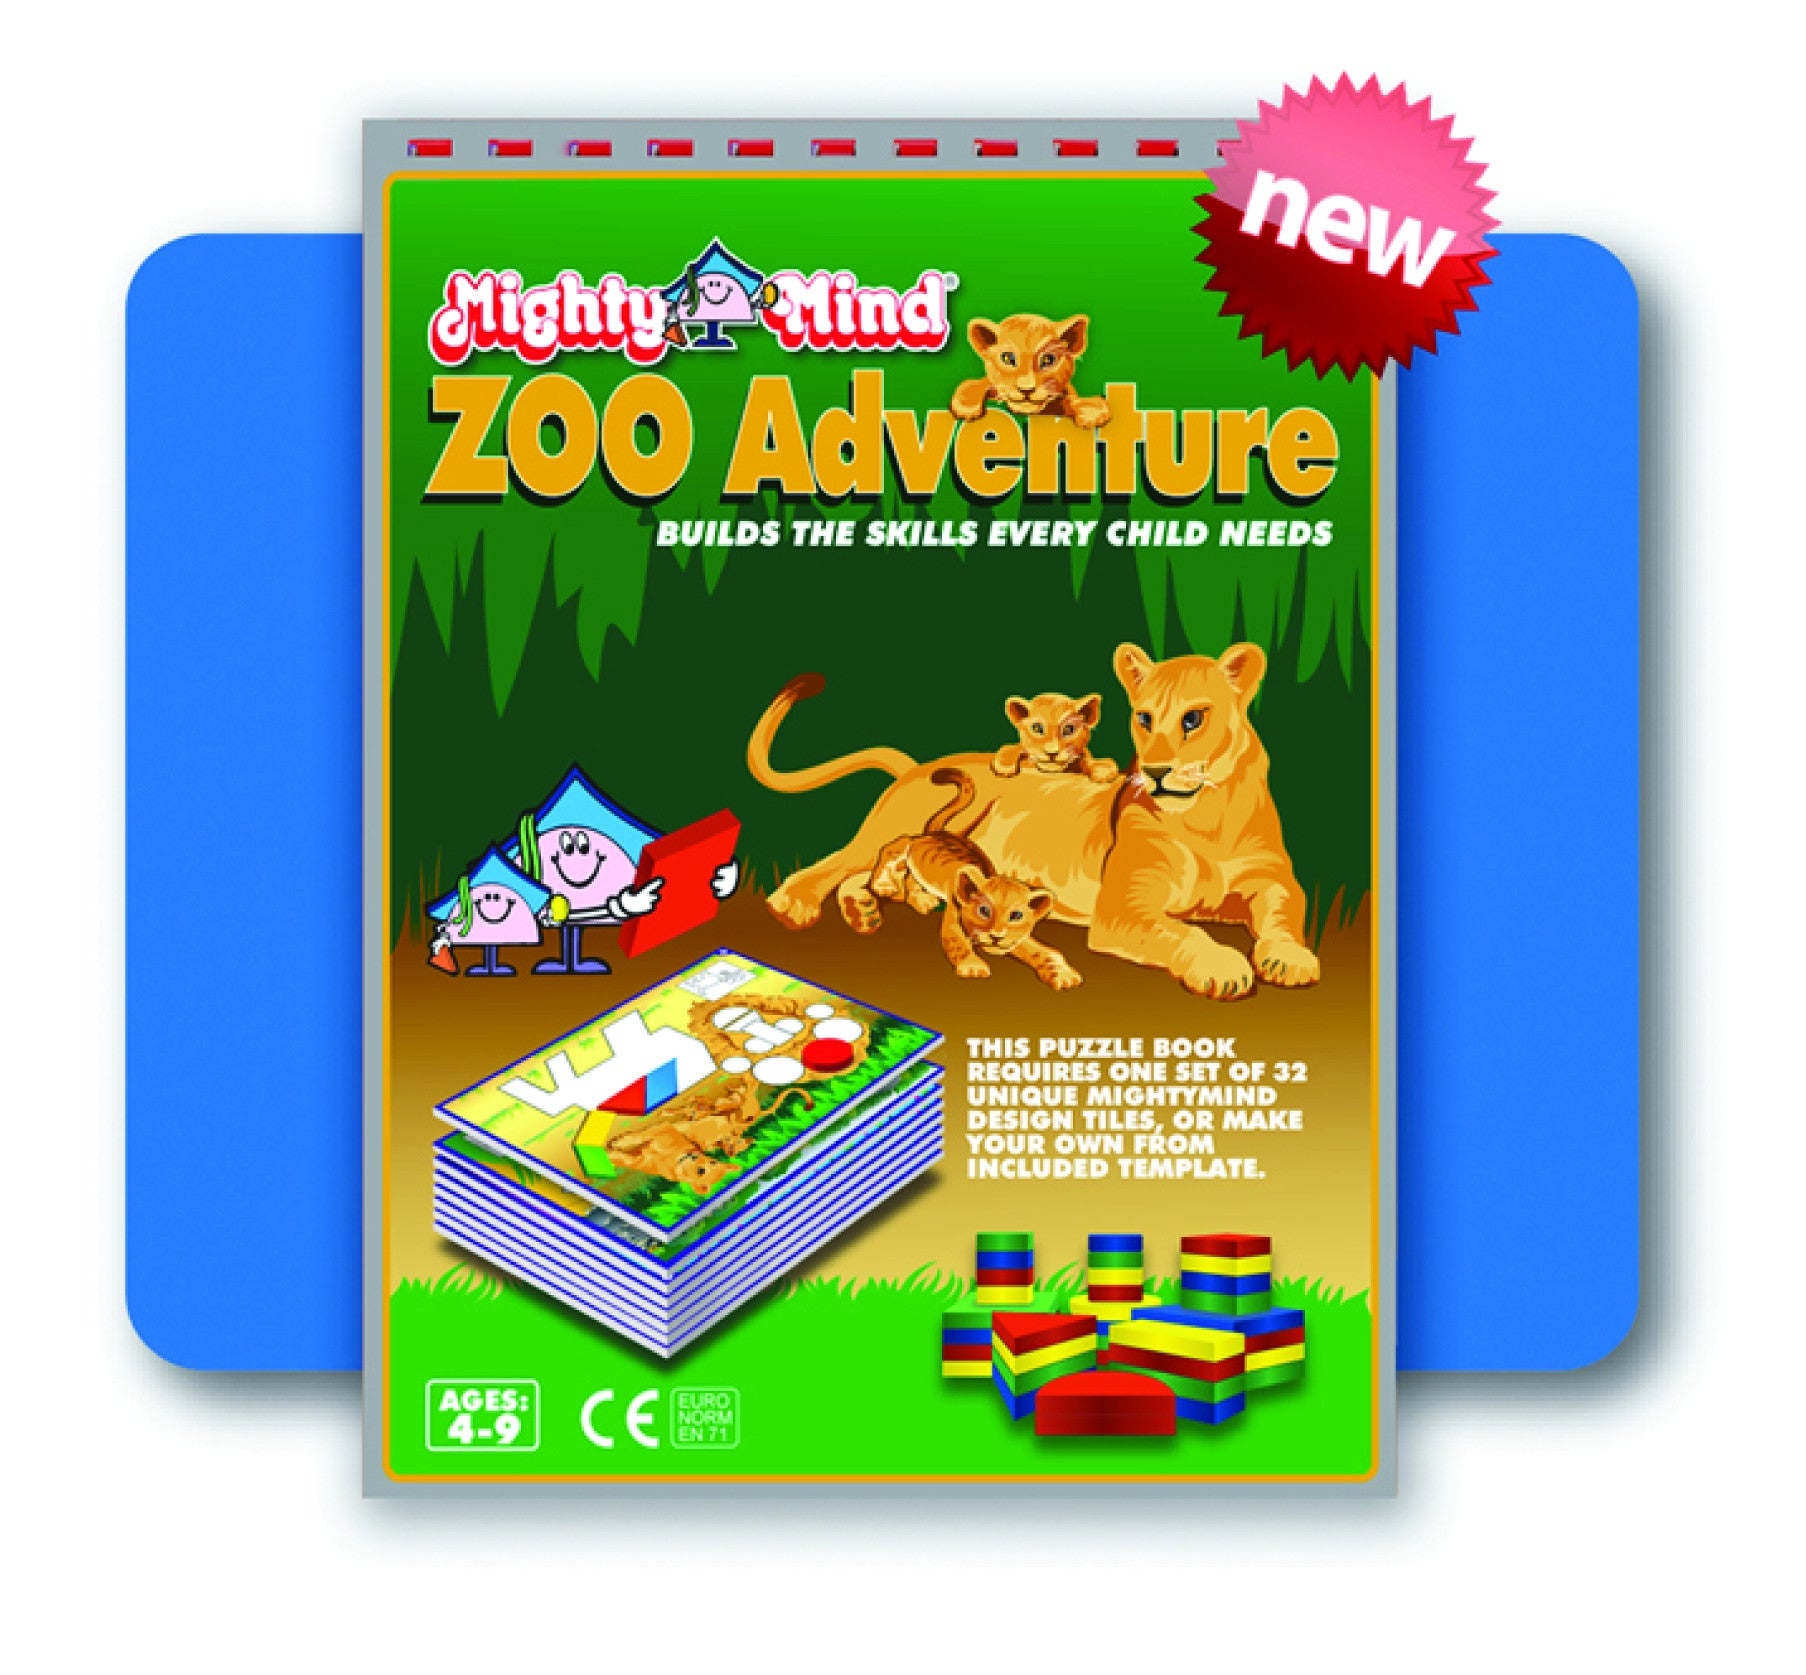 Leisure Learning Products Zoo Adventure Design book 40114